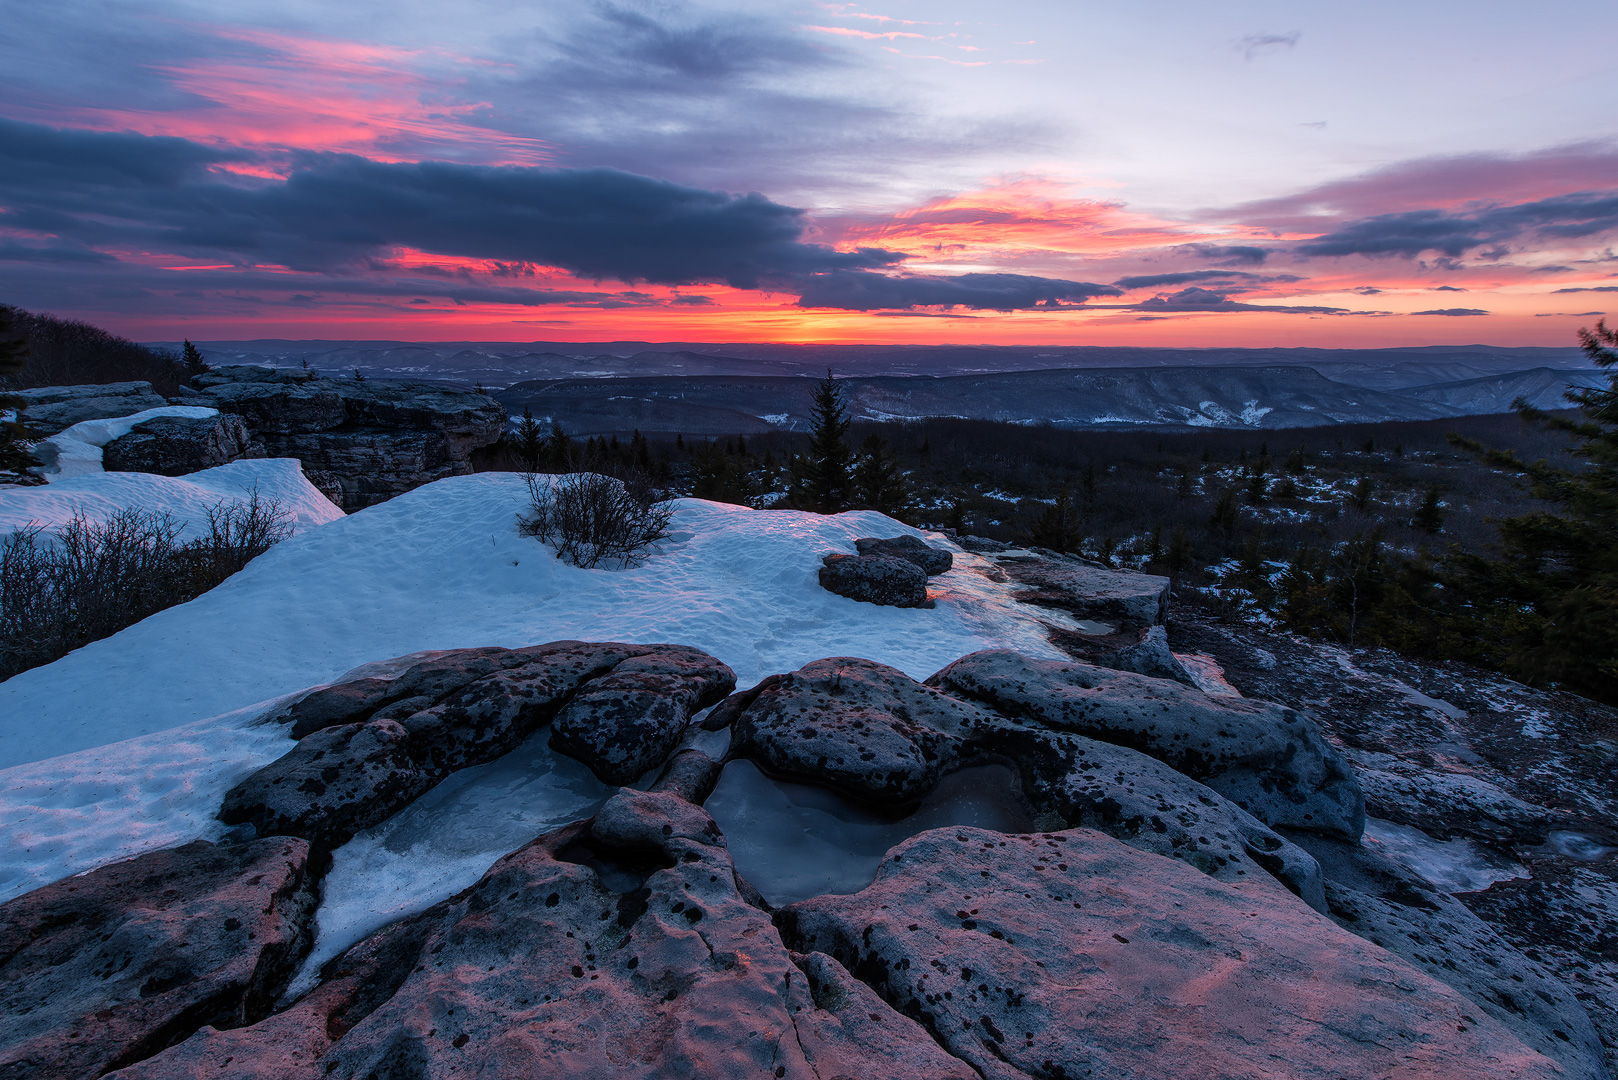 West Virginia, Bear Rocks, Dolly Sods Wilderness, Canaan Valley, Hemlock, Mountain Laurel, Dolly Sods, Allegheny Mountains, Bear Rocks Preserve, Monongahela National Forest, Winter, Snow, Dramatic Sky, photo